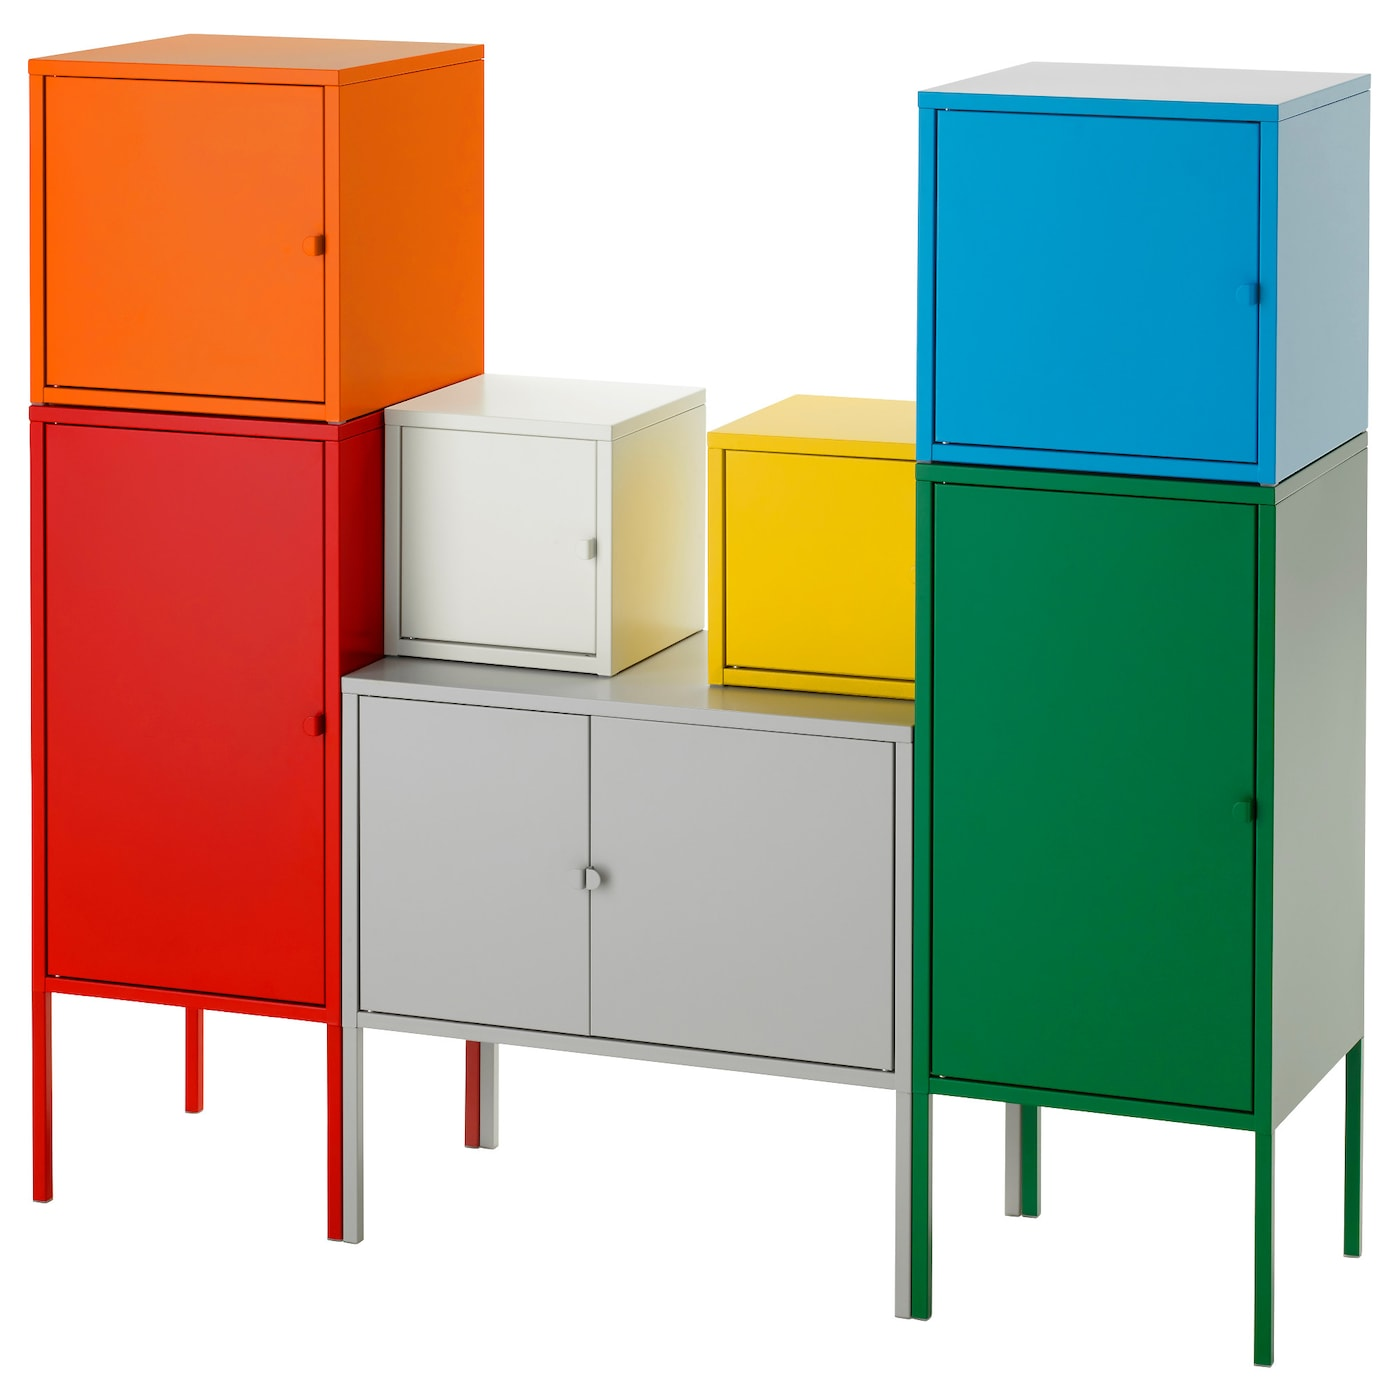 Lixhult storage combination white green blue yellow red for Metal lockers ikea